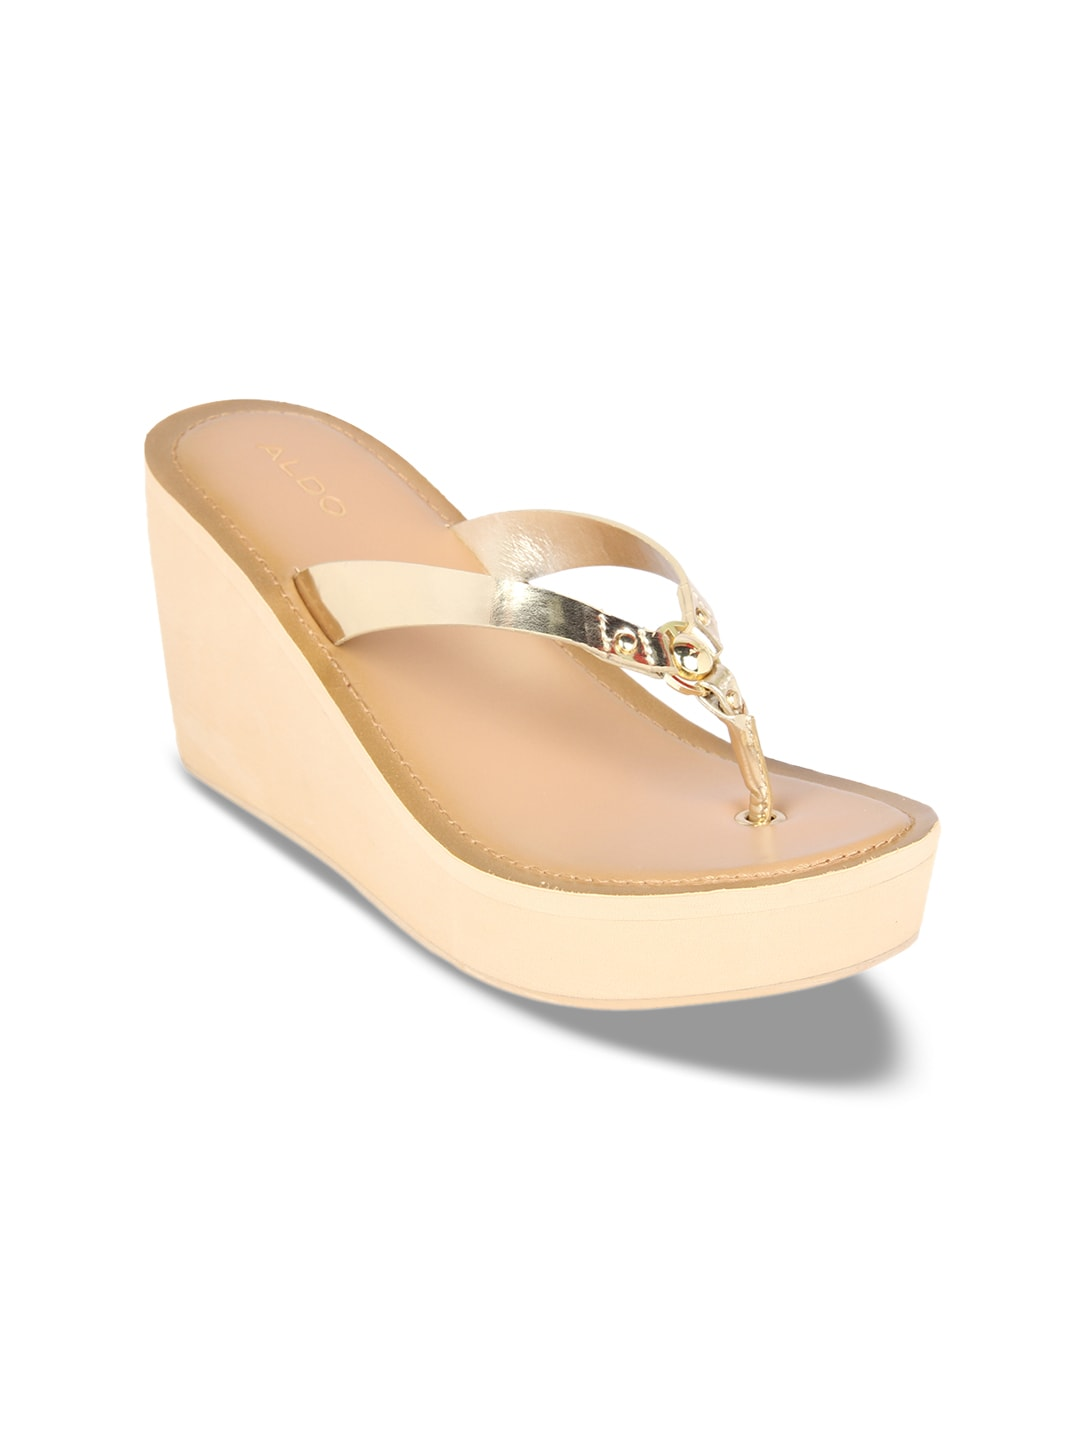 363b25403e4 ALDO Shoes - Buy Shoes from ALDO Online Store in India